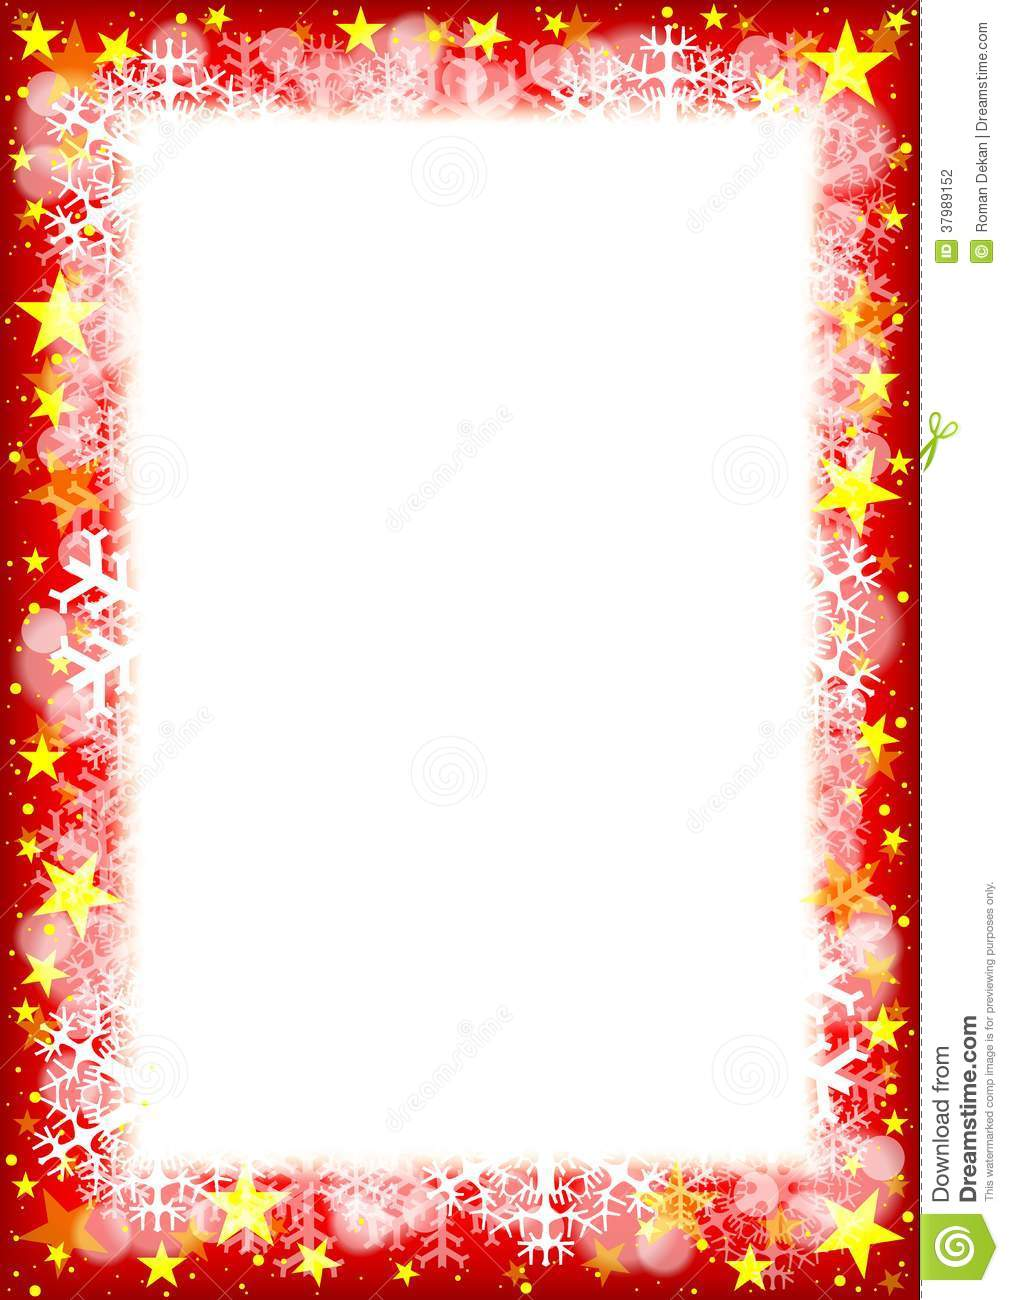 Christmas star border merry and happy new year